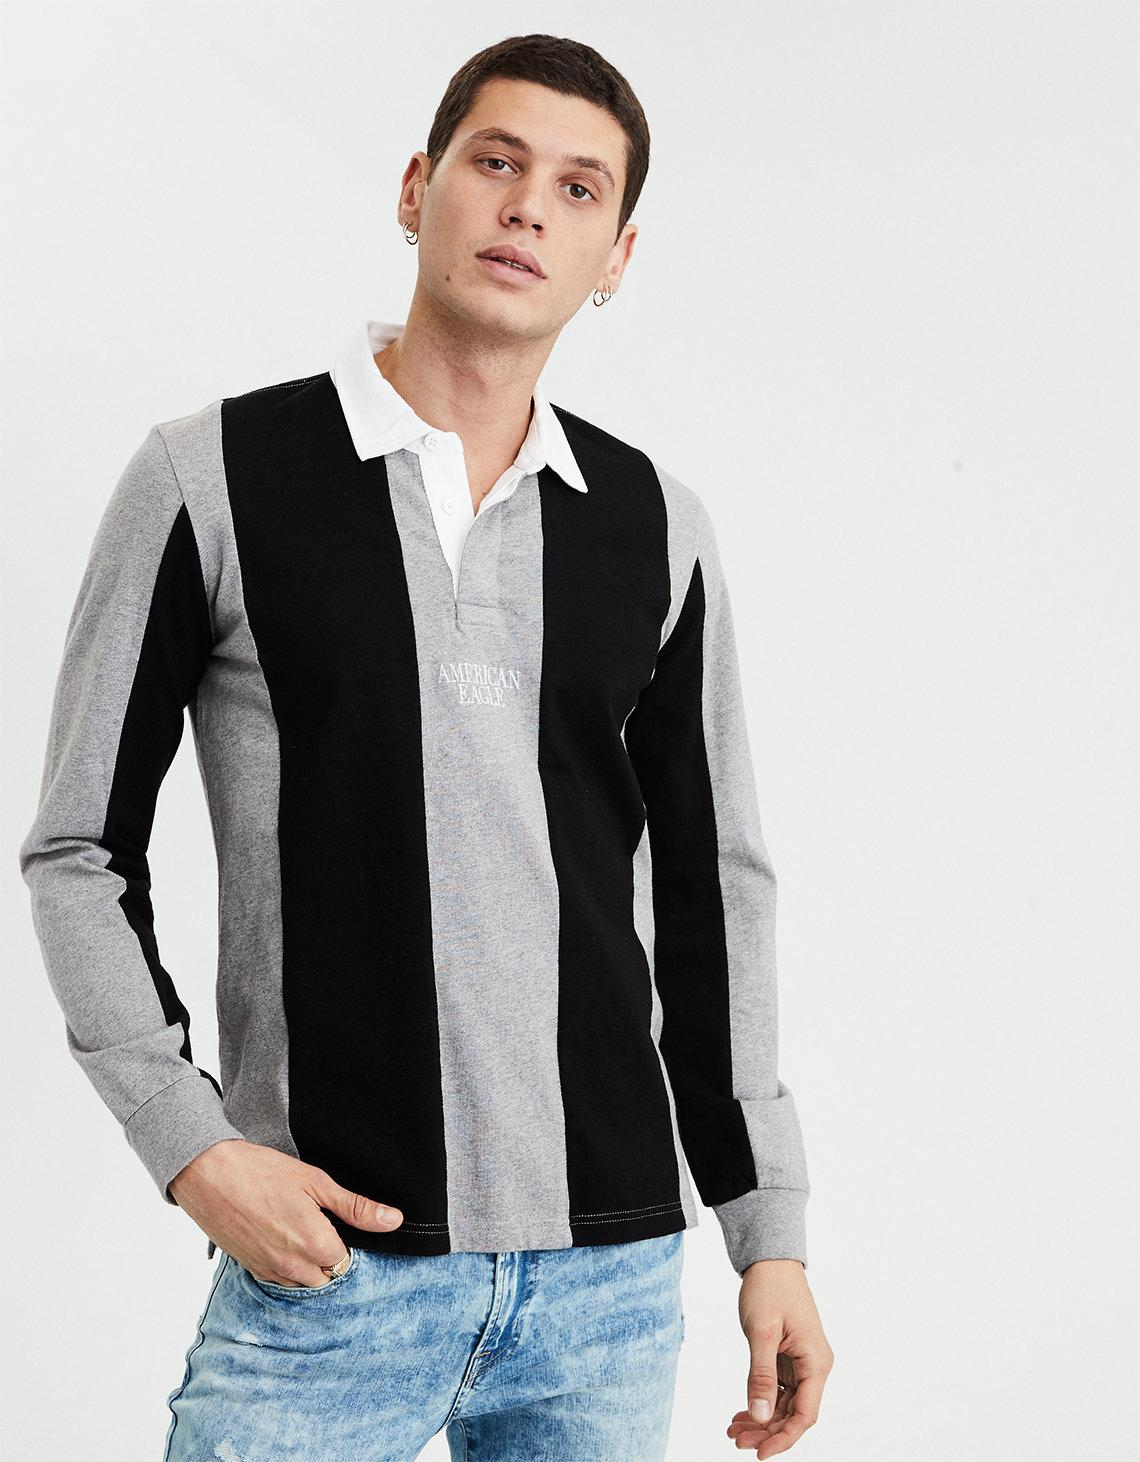 781cee07fea Lyst - American Eagle Ae Long Sleeve Rugby Shirt in Black for Men